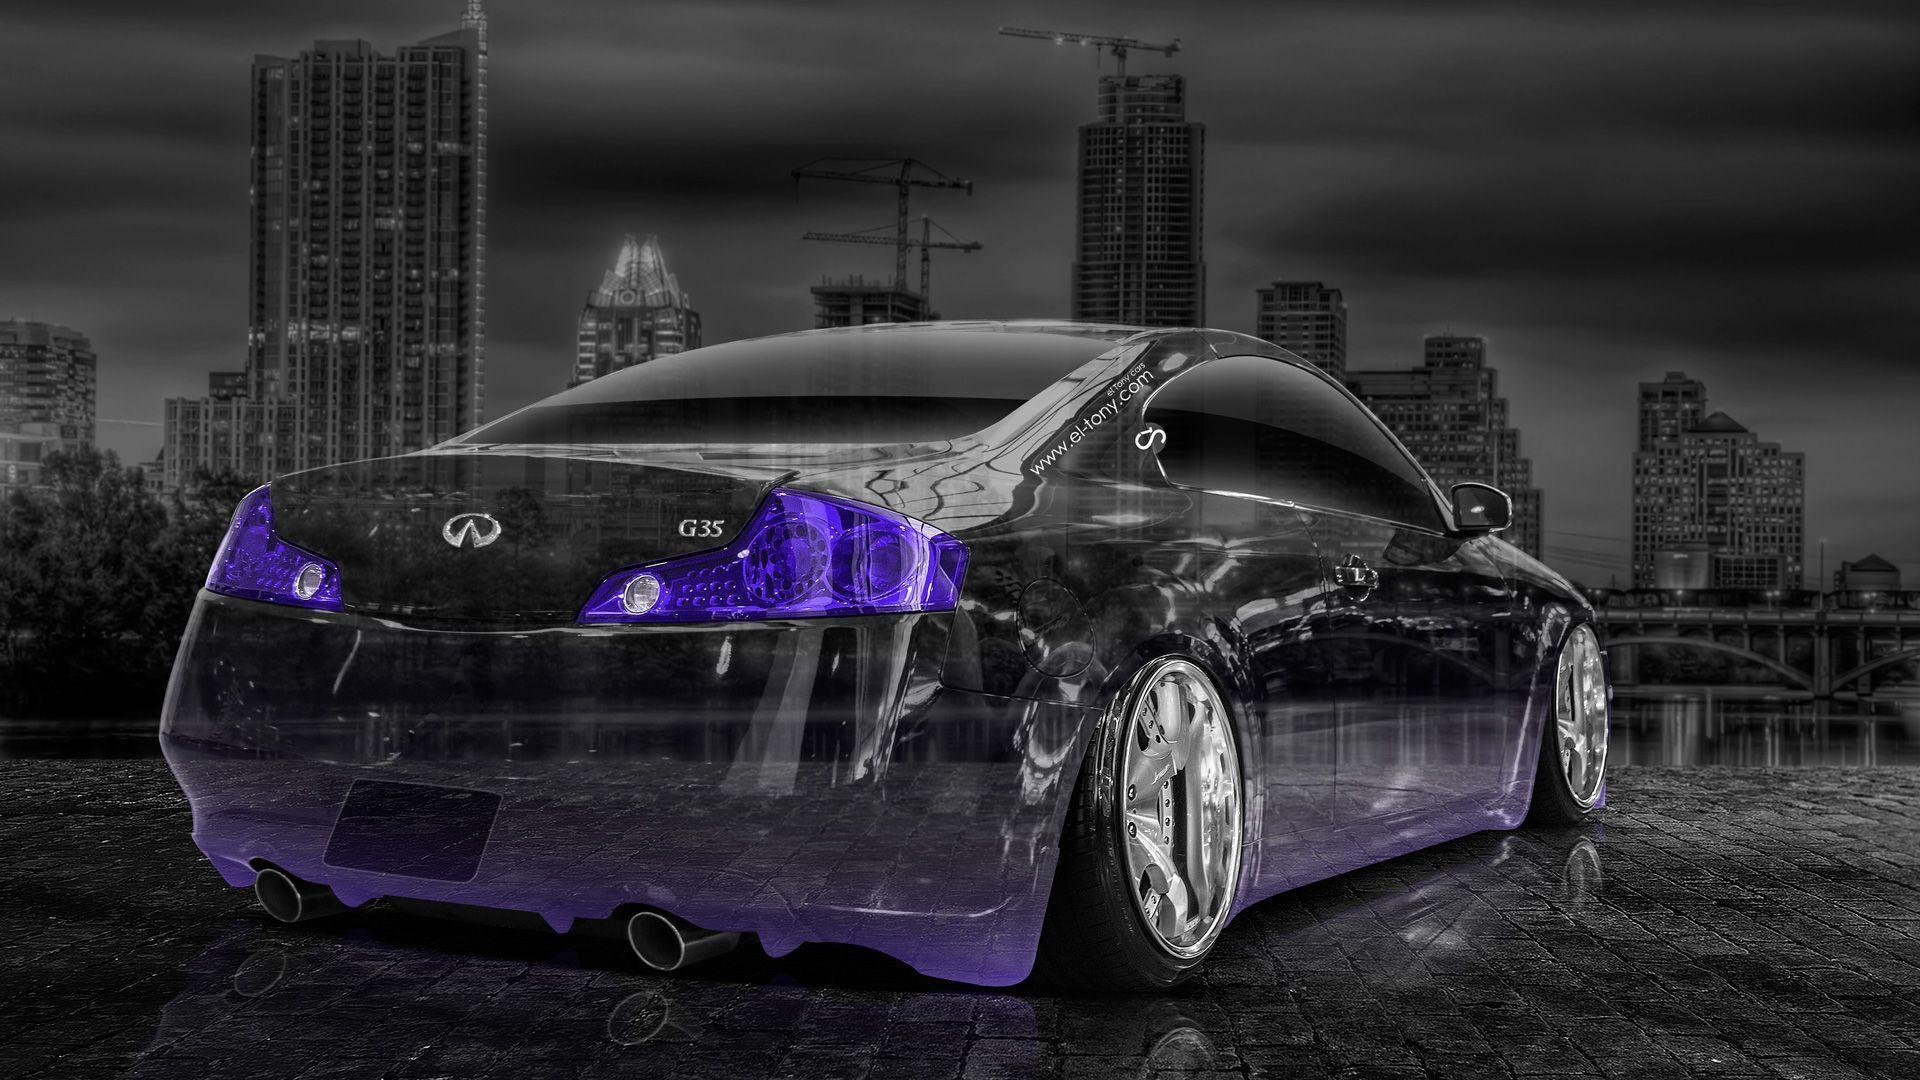 Toy Car Wallpaper Infiniti G35 Wallpapers Wallpaper Cave